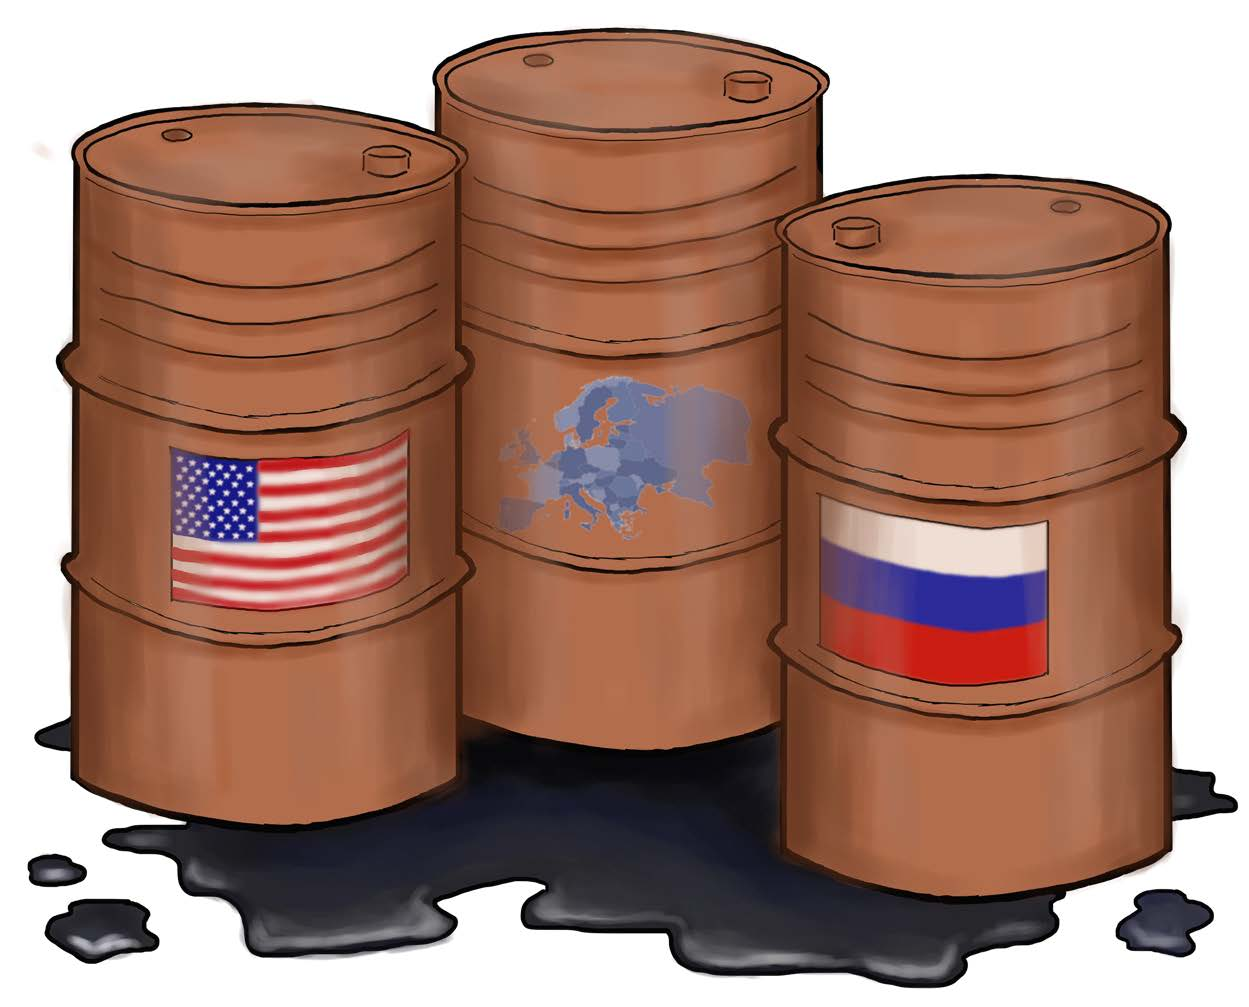 ILLUSTRATION BY SARAH SISK STAFF WRITER The United States and Russia are deadlocked in a new Cold War battle. The struggle has shifted from the fight for global influence to the fight for control of Europe's energy future.